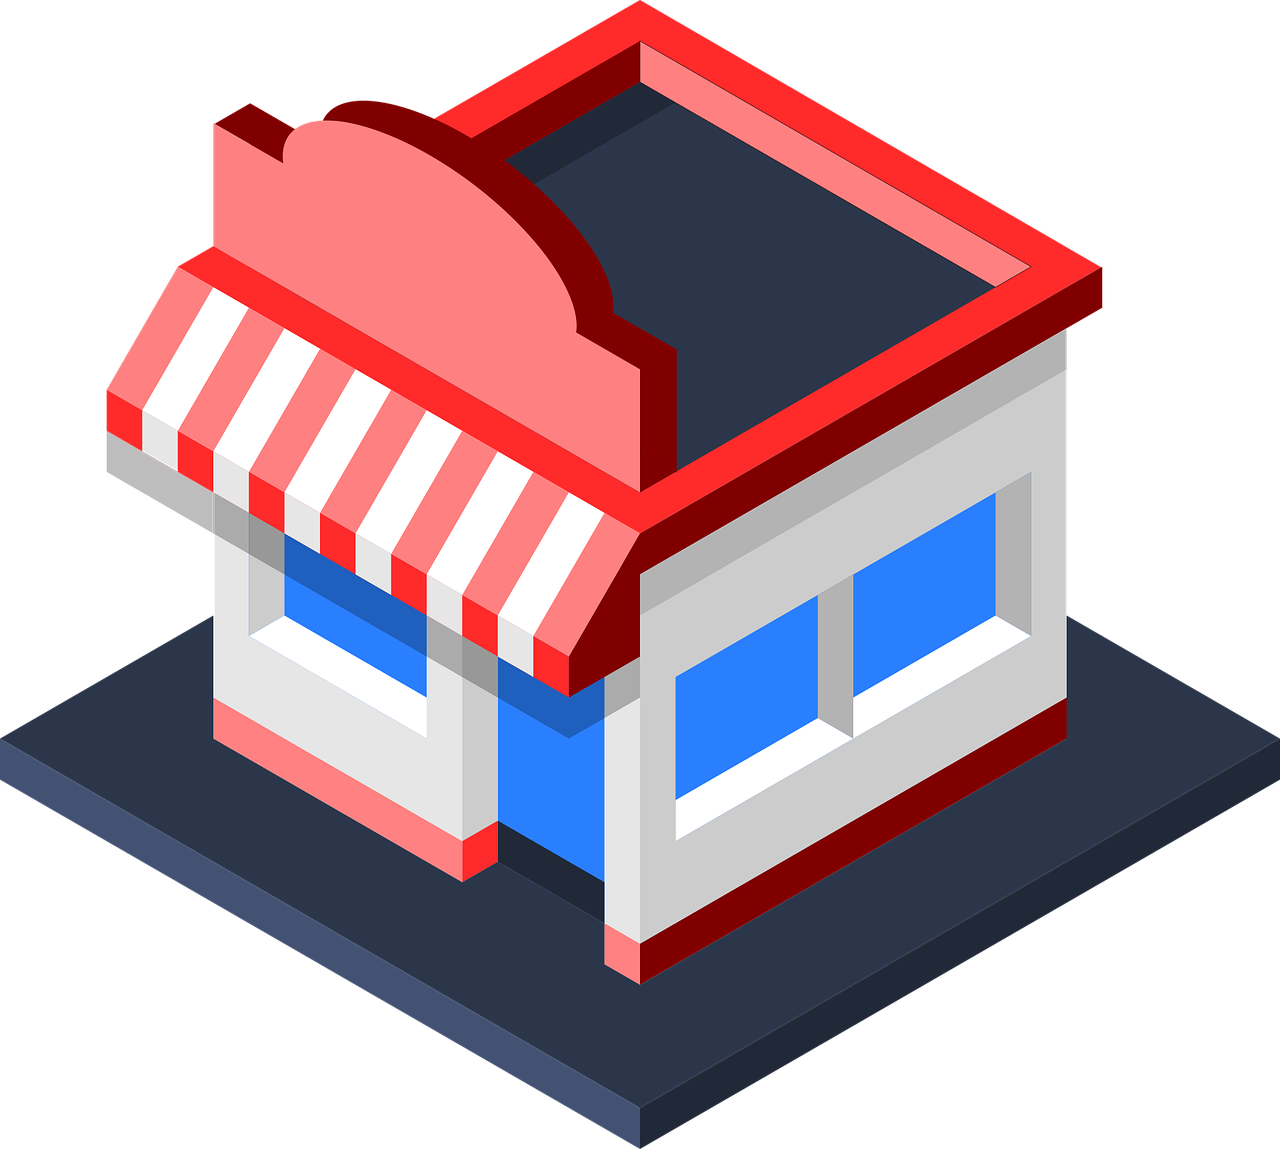 Storefront clipart illustrated. Ebay business strategy a